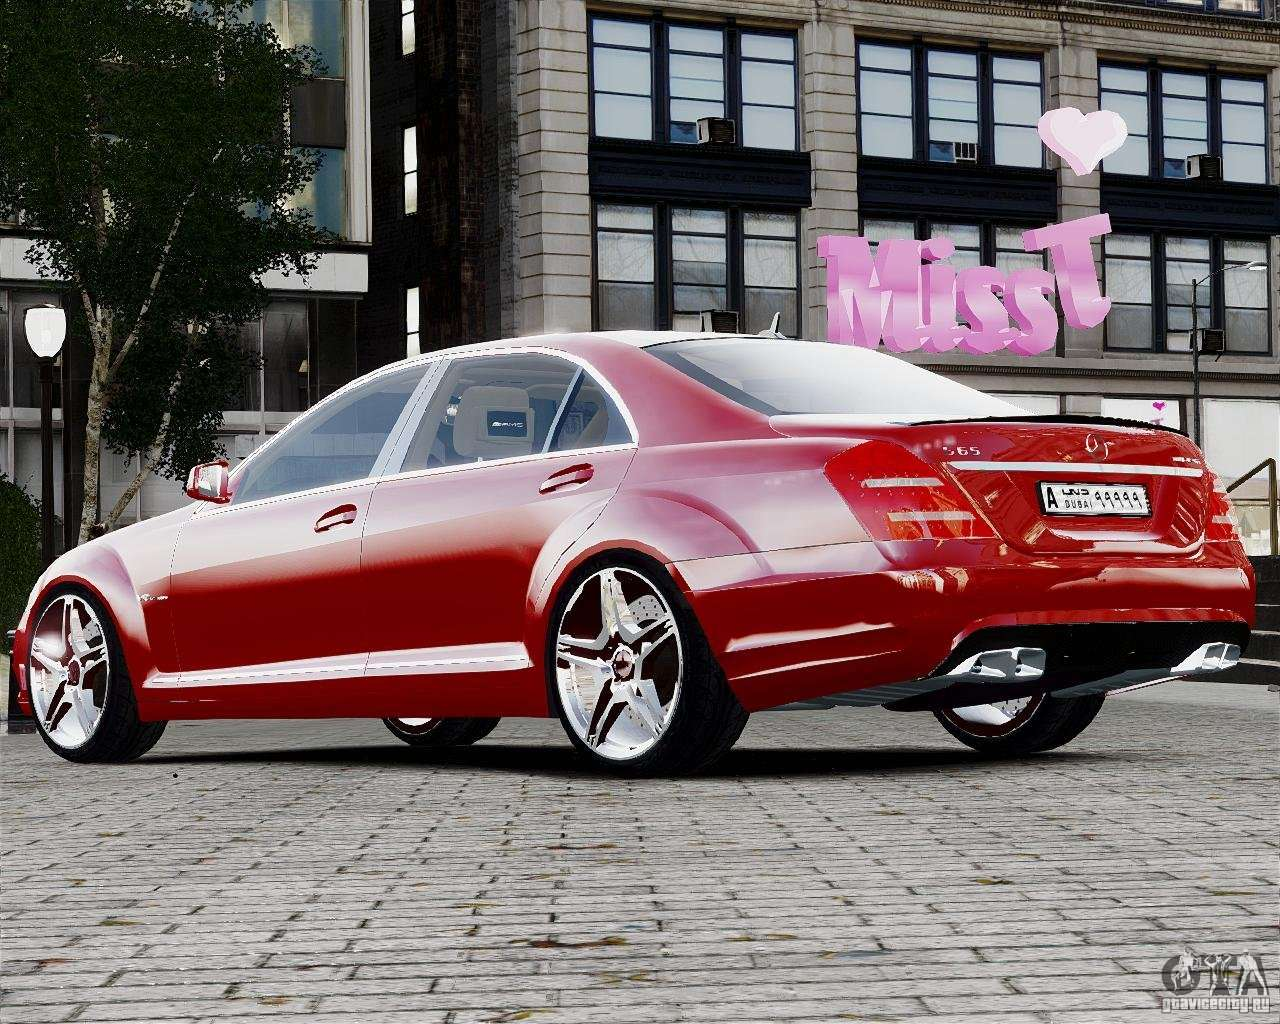 Mercedes benz s65 amg 2010 final for gta 4 for Mercedes benz s65 amg